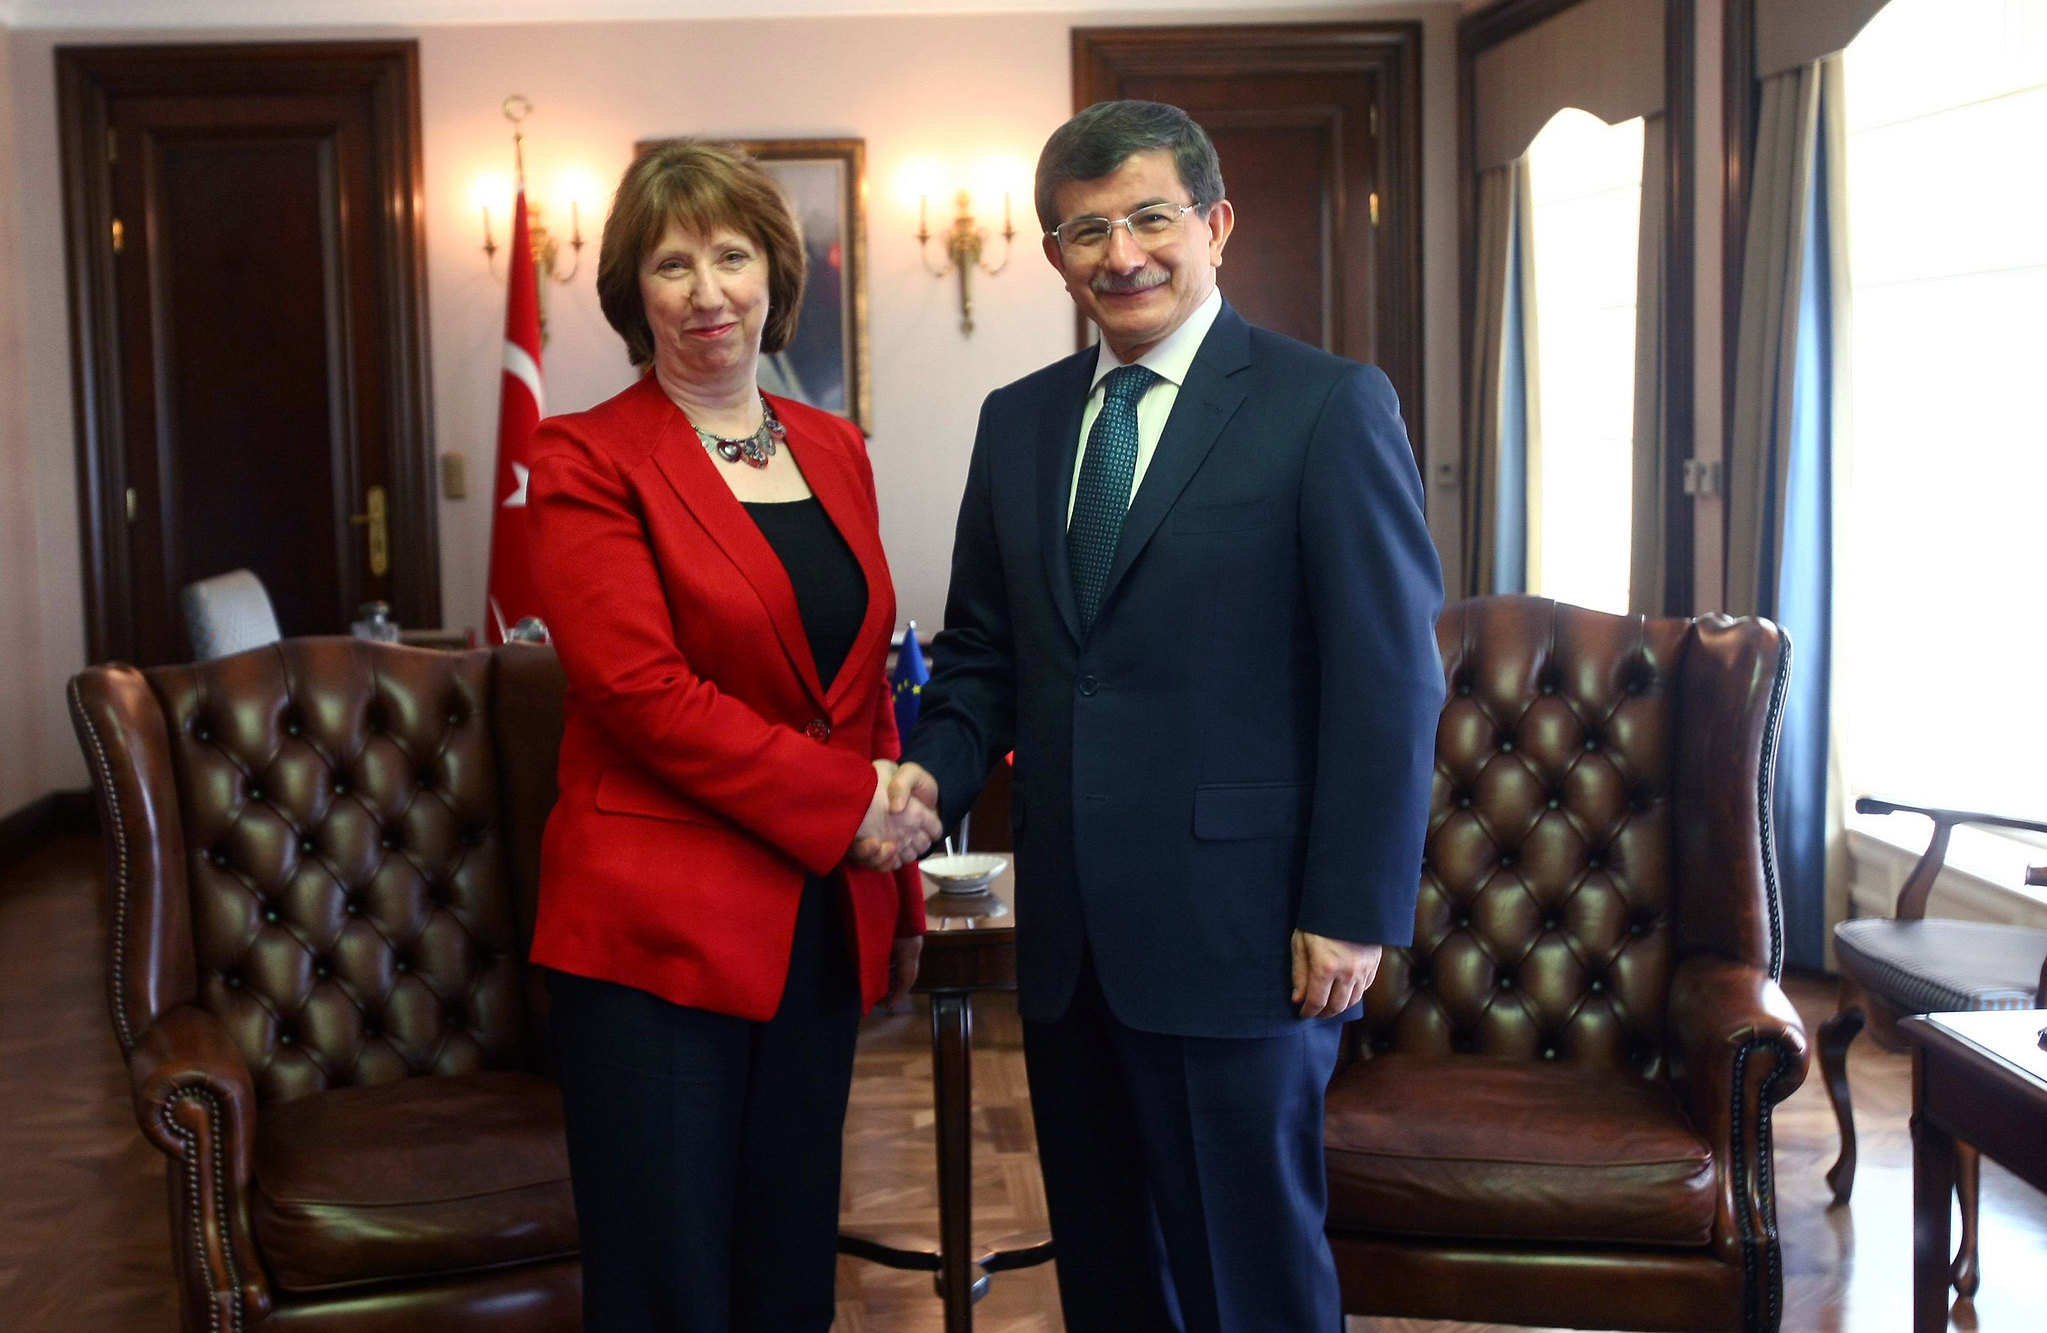 Catherine Ashton & Foreign Minister of Turkey Ahmet Davutoğlu